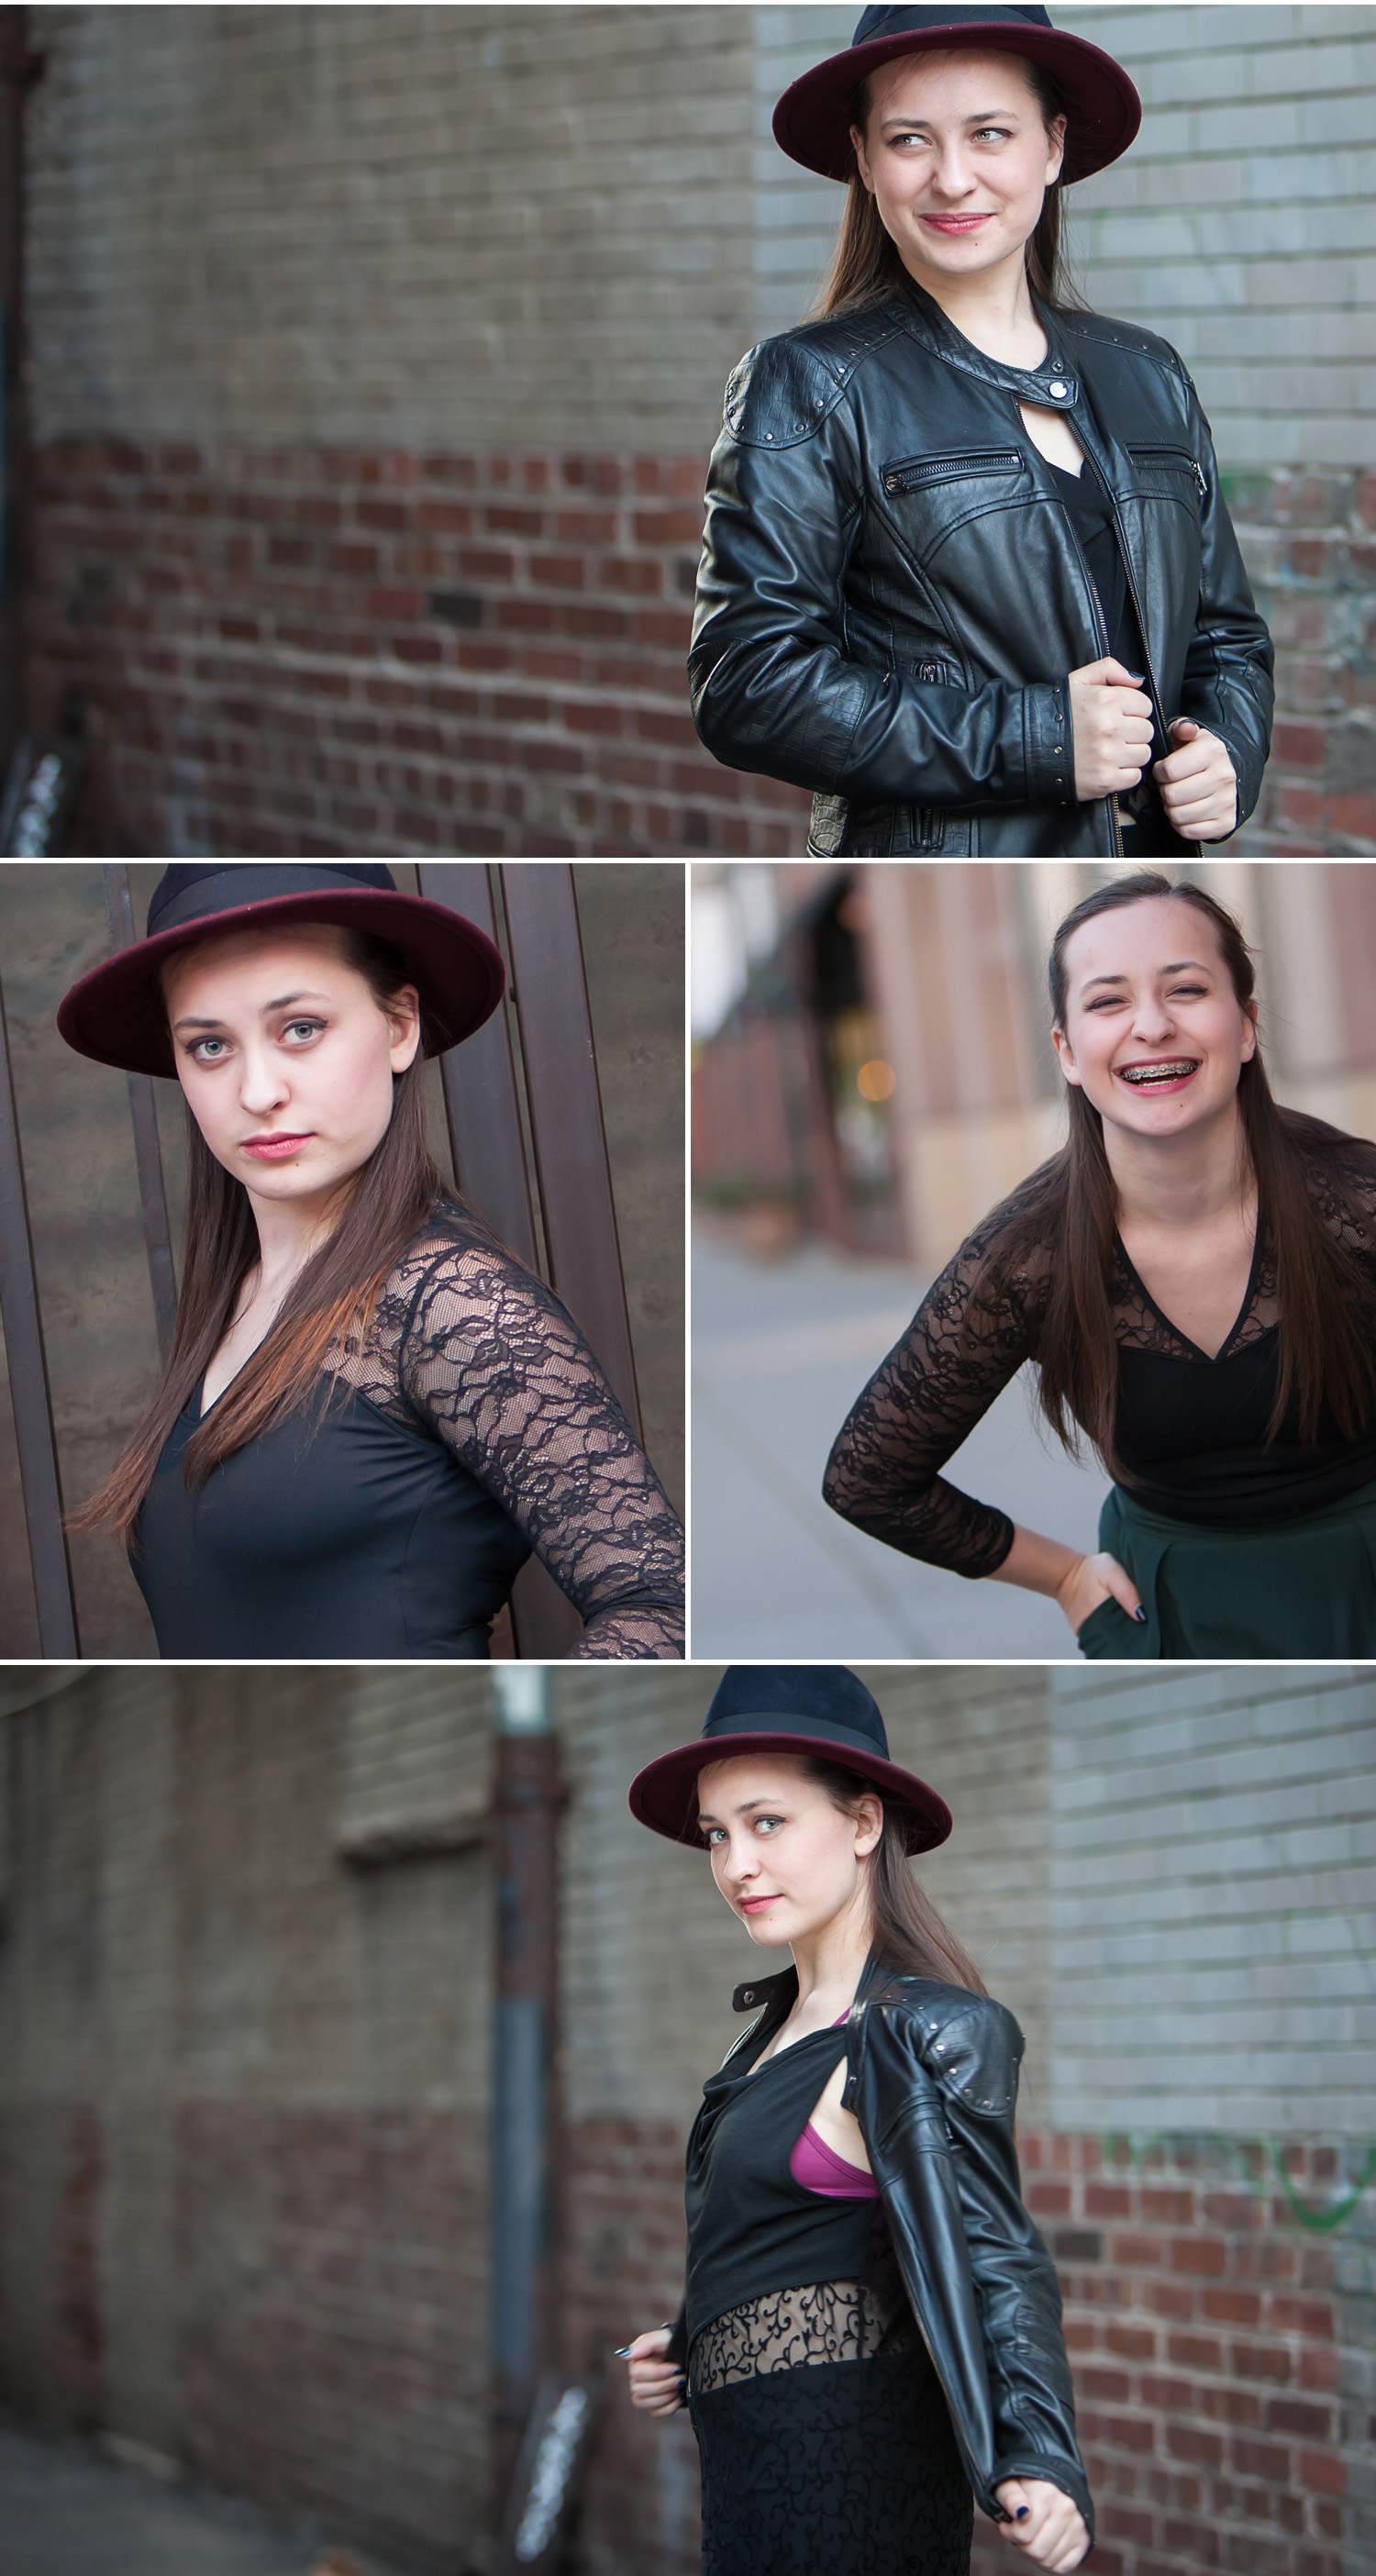 Leather jacket teen girl portraits in urban setting with hat, with Denver photographer Jennifer Koskinen, Merritt Portrait Studio.